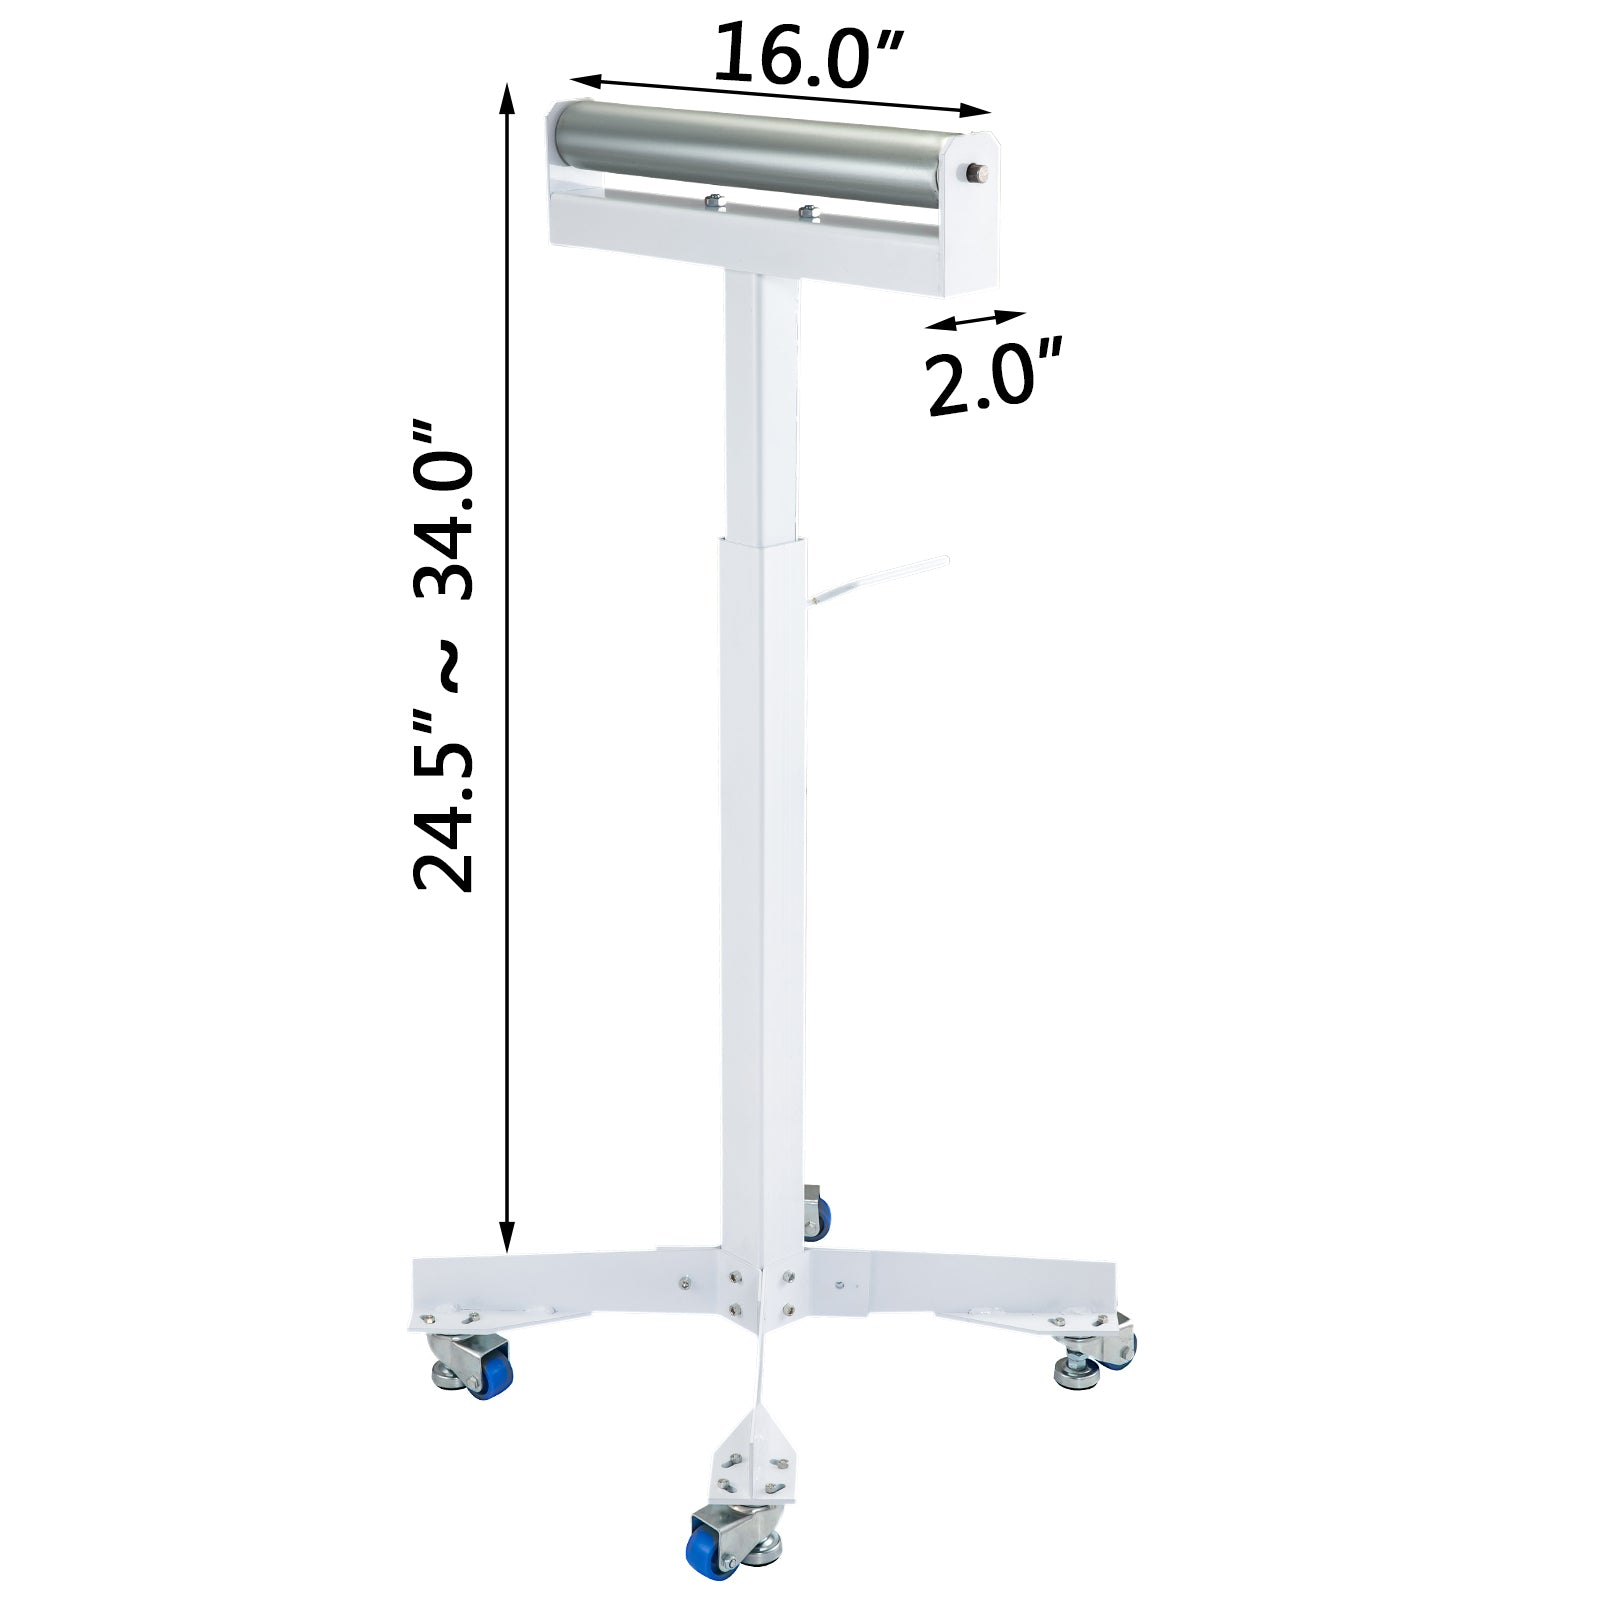 Roller Table Tools Stand Hss-10 With Adjustable Wedge Lock And Non-skid Casters